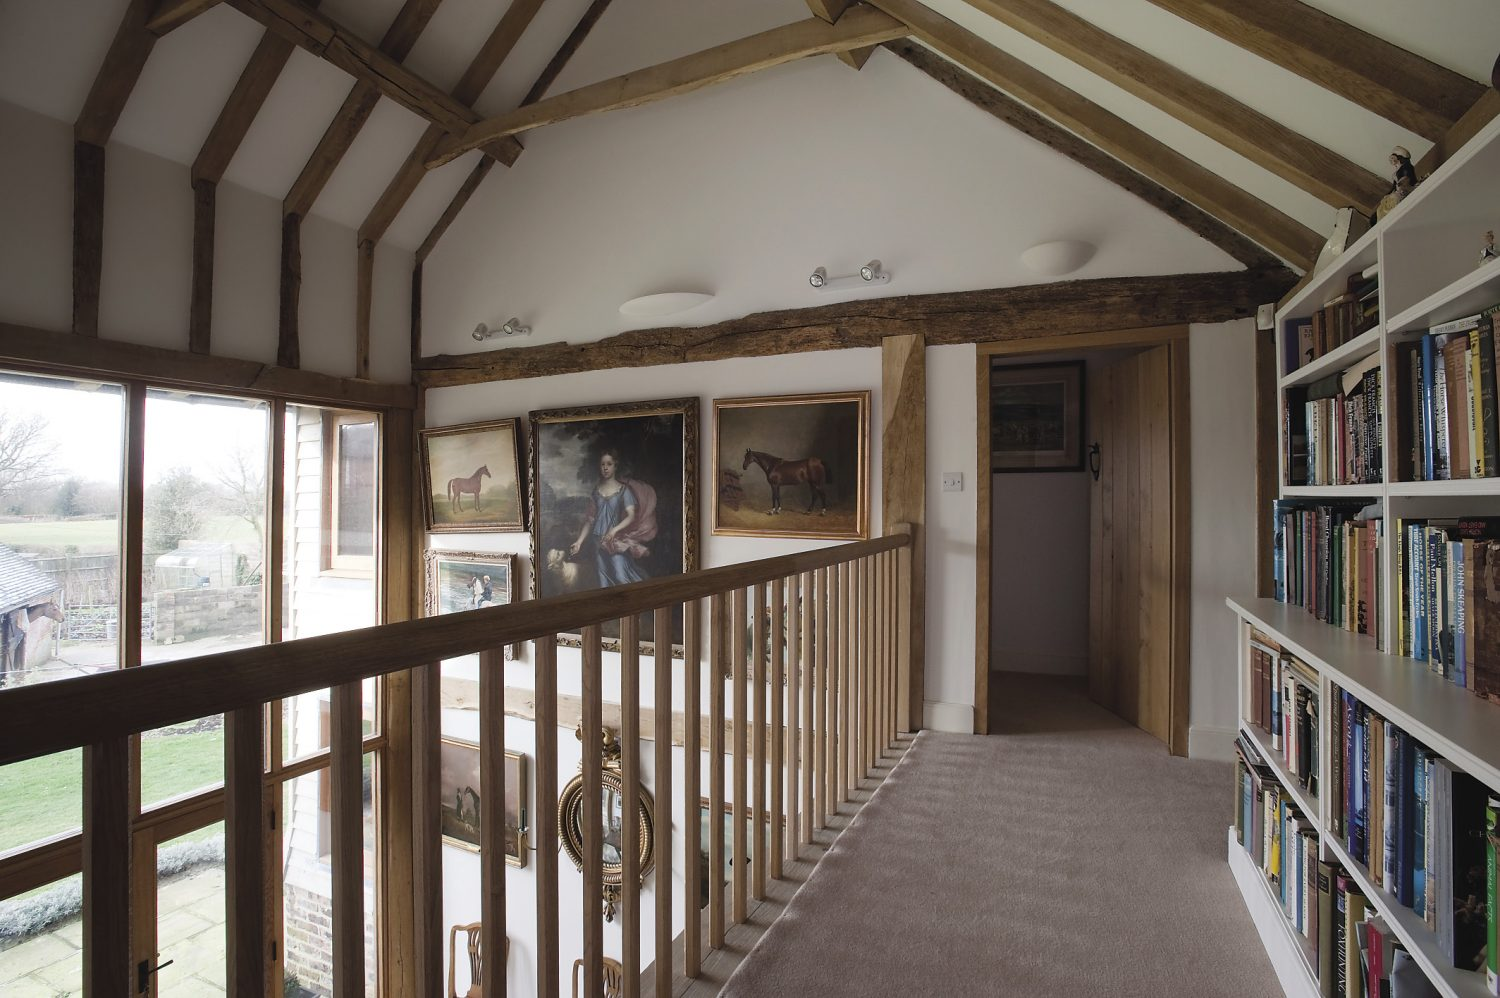 watercolours are hung on the north, and oils on the south-facing wall as they're not so susceptible to fading. Horses are the dominant subject